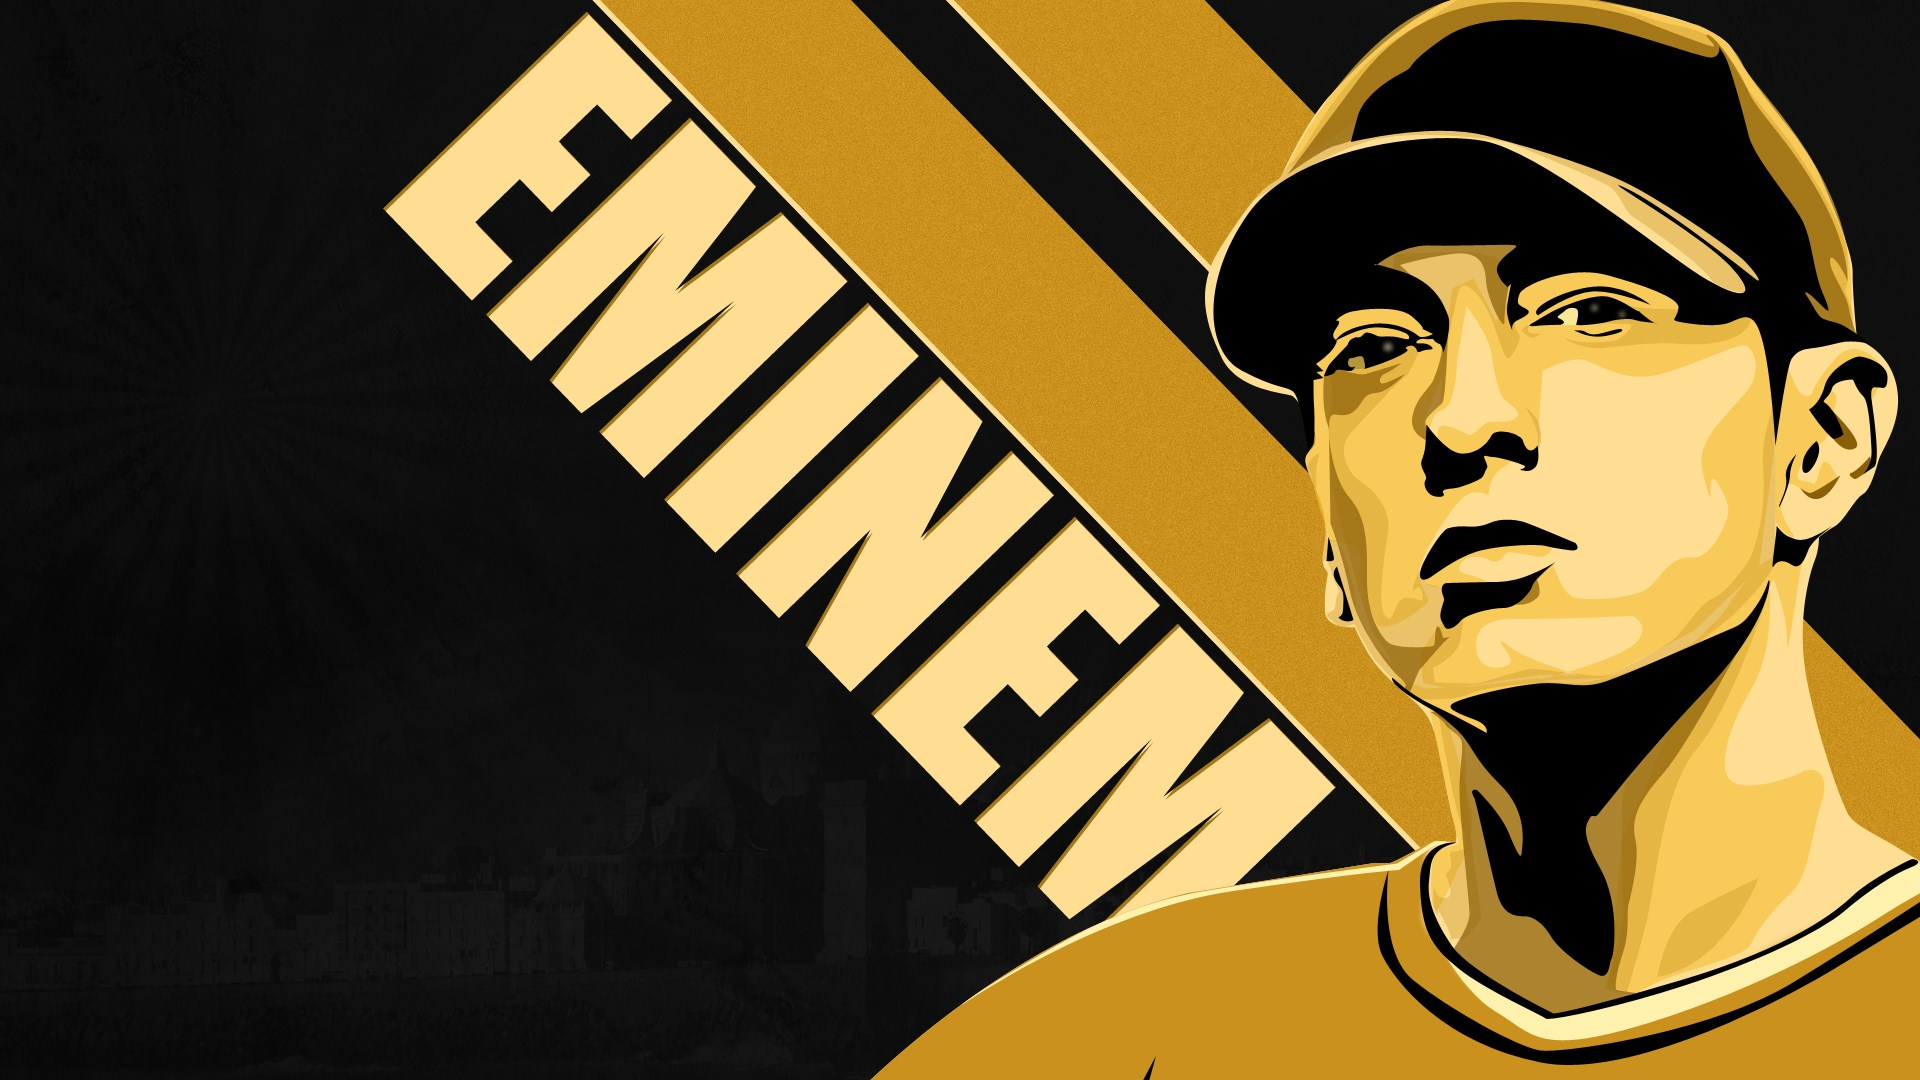 Eminem Wallpapers HD A33